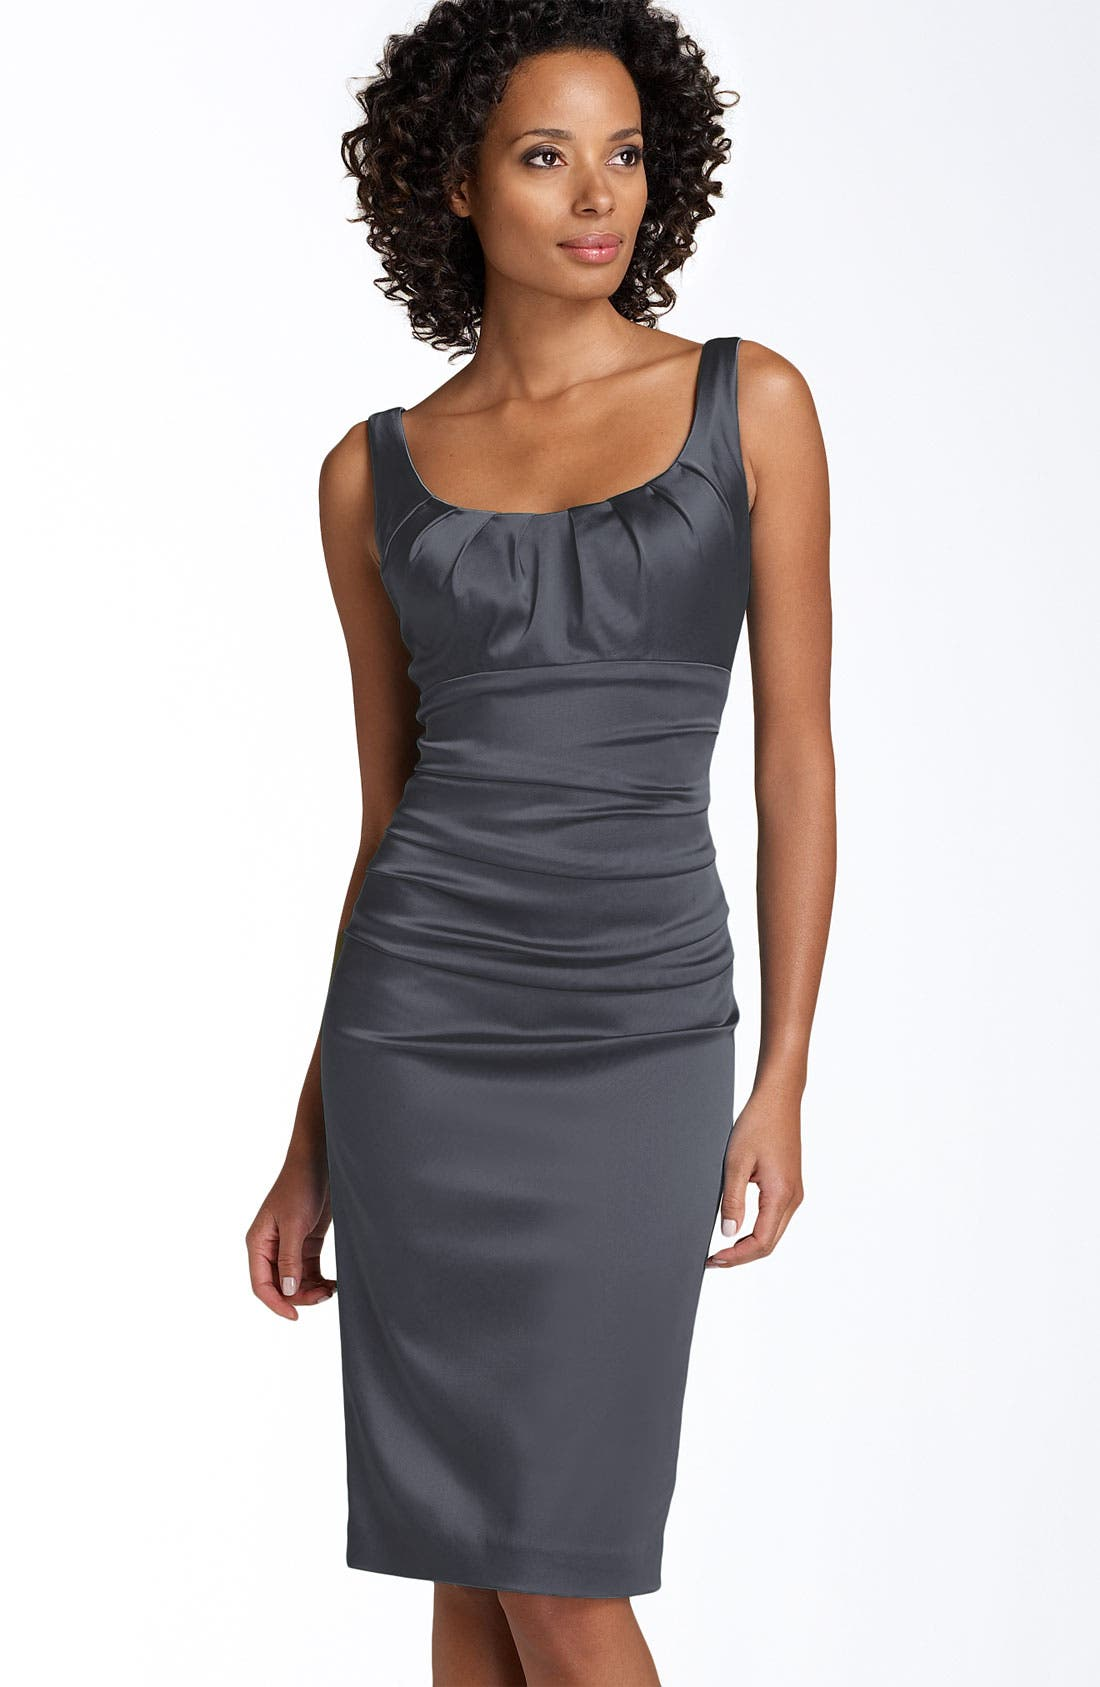 Alternate Image 1 Selected - Suzi Chin for Maggy Boutique Sleeveless Stretch Satin Sheath Dress